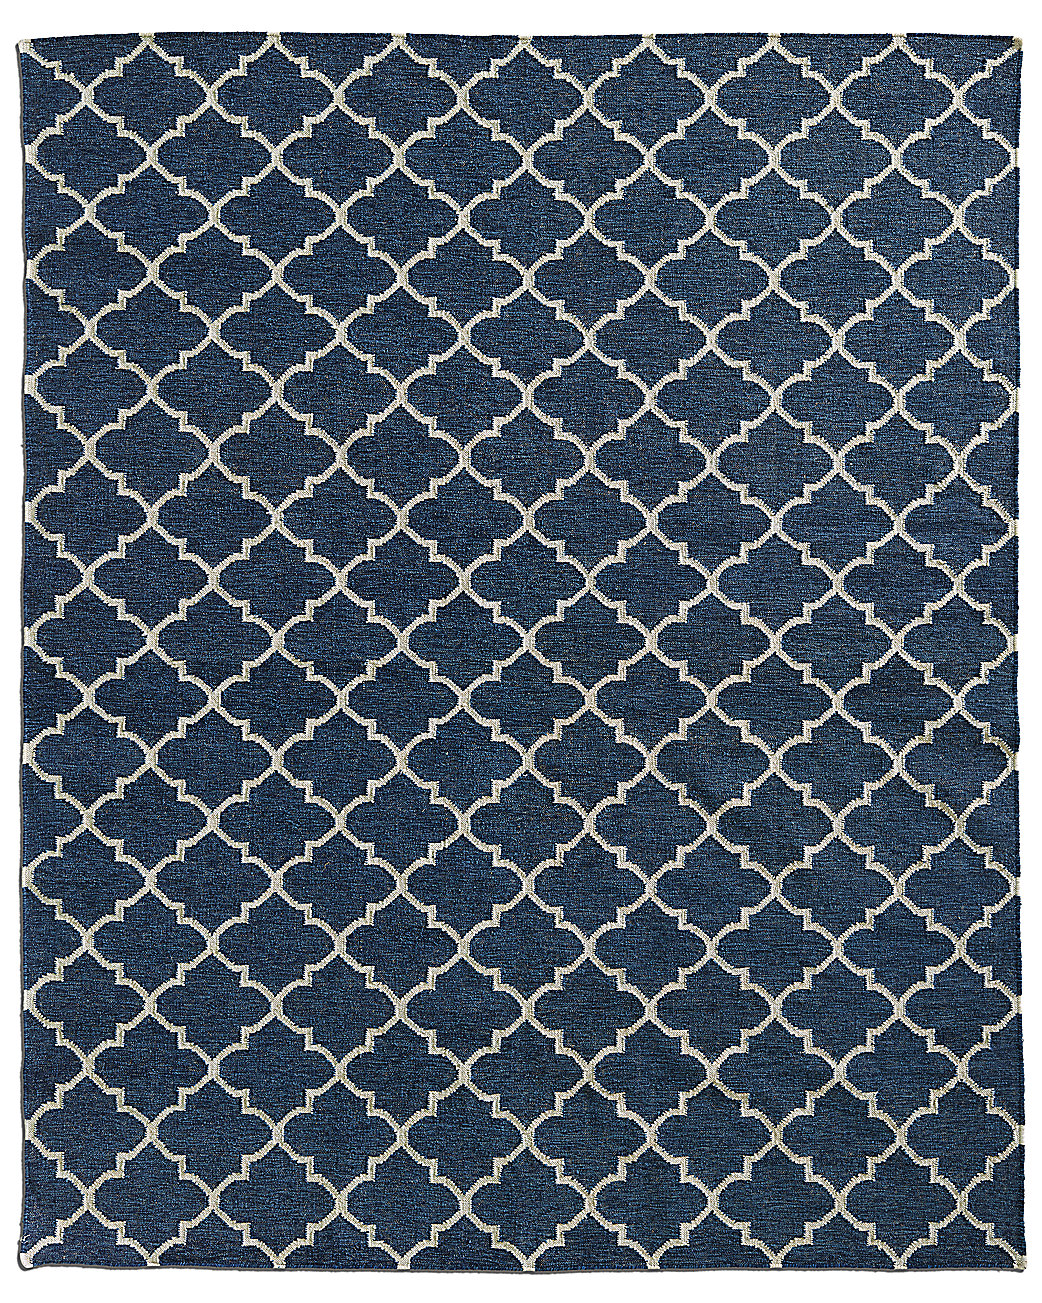 Hand-Knotted Moroccan Tile Flatweave Outdoor Rug - Marine/Ivory